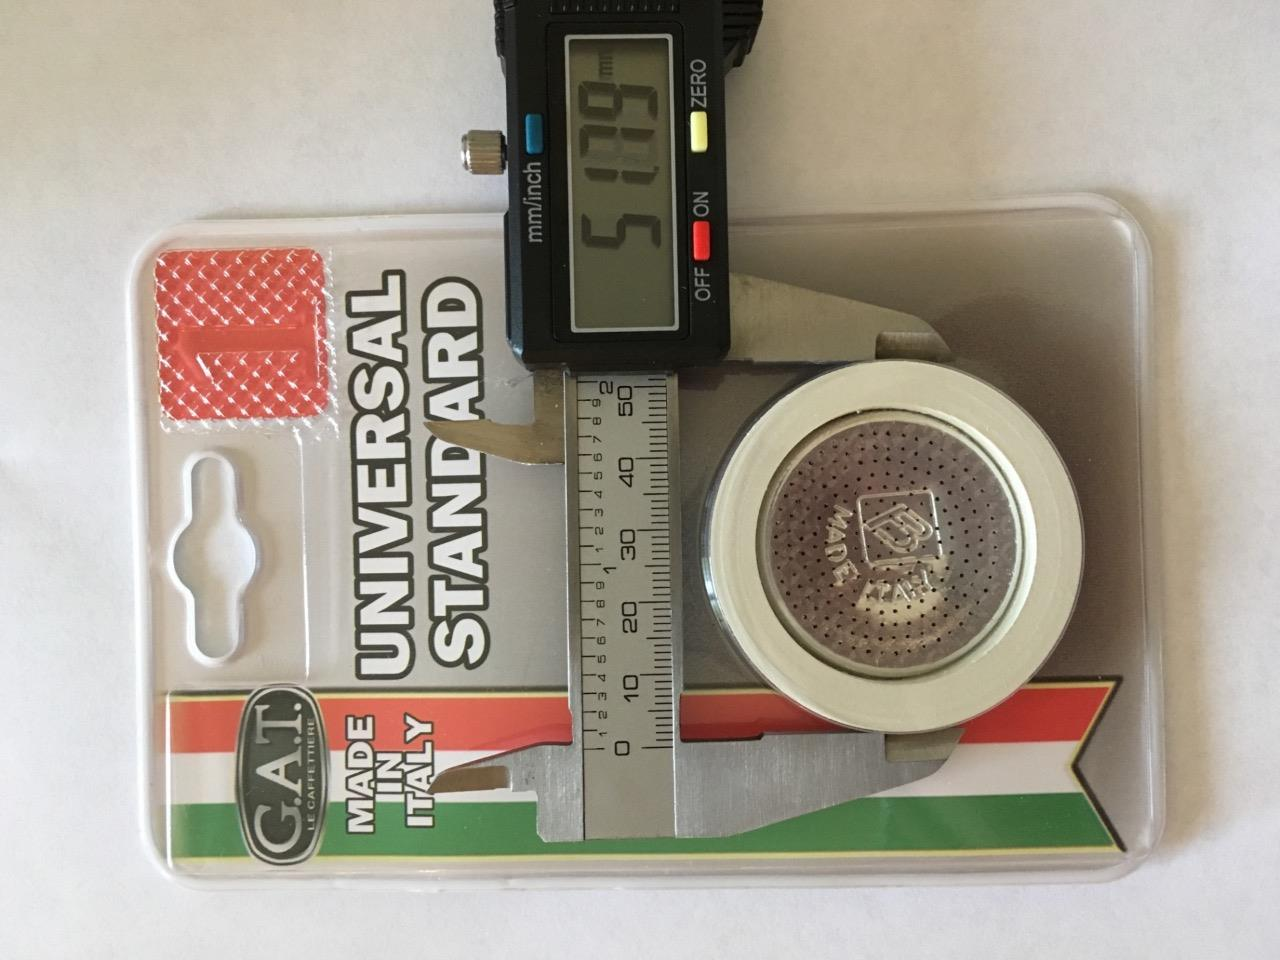 Stovetop Coffee Maker Parts : GAT Stovetop Espresso Maker Spare Parts Rubber Seals & Filter MADE IN ITALY! eBay